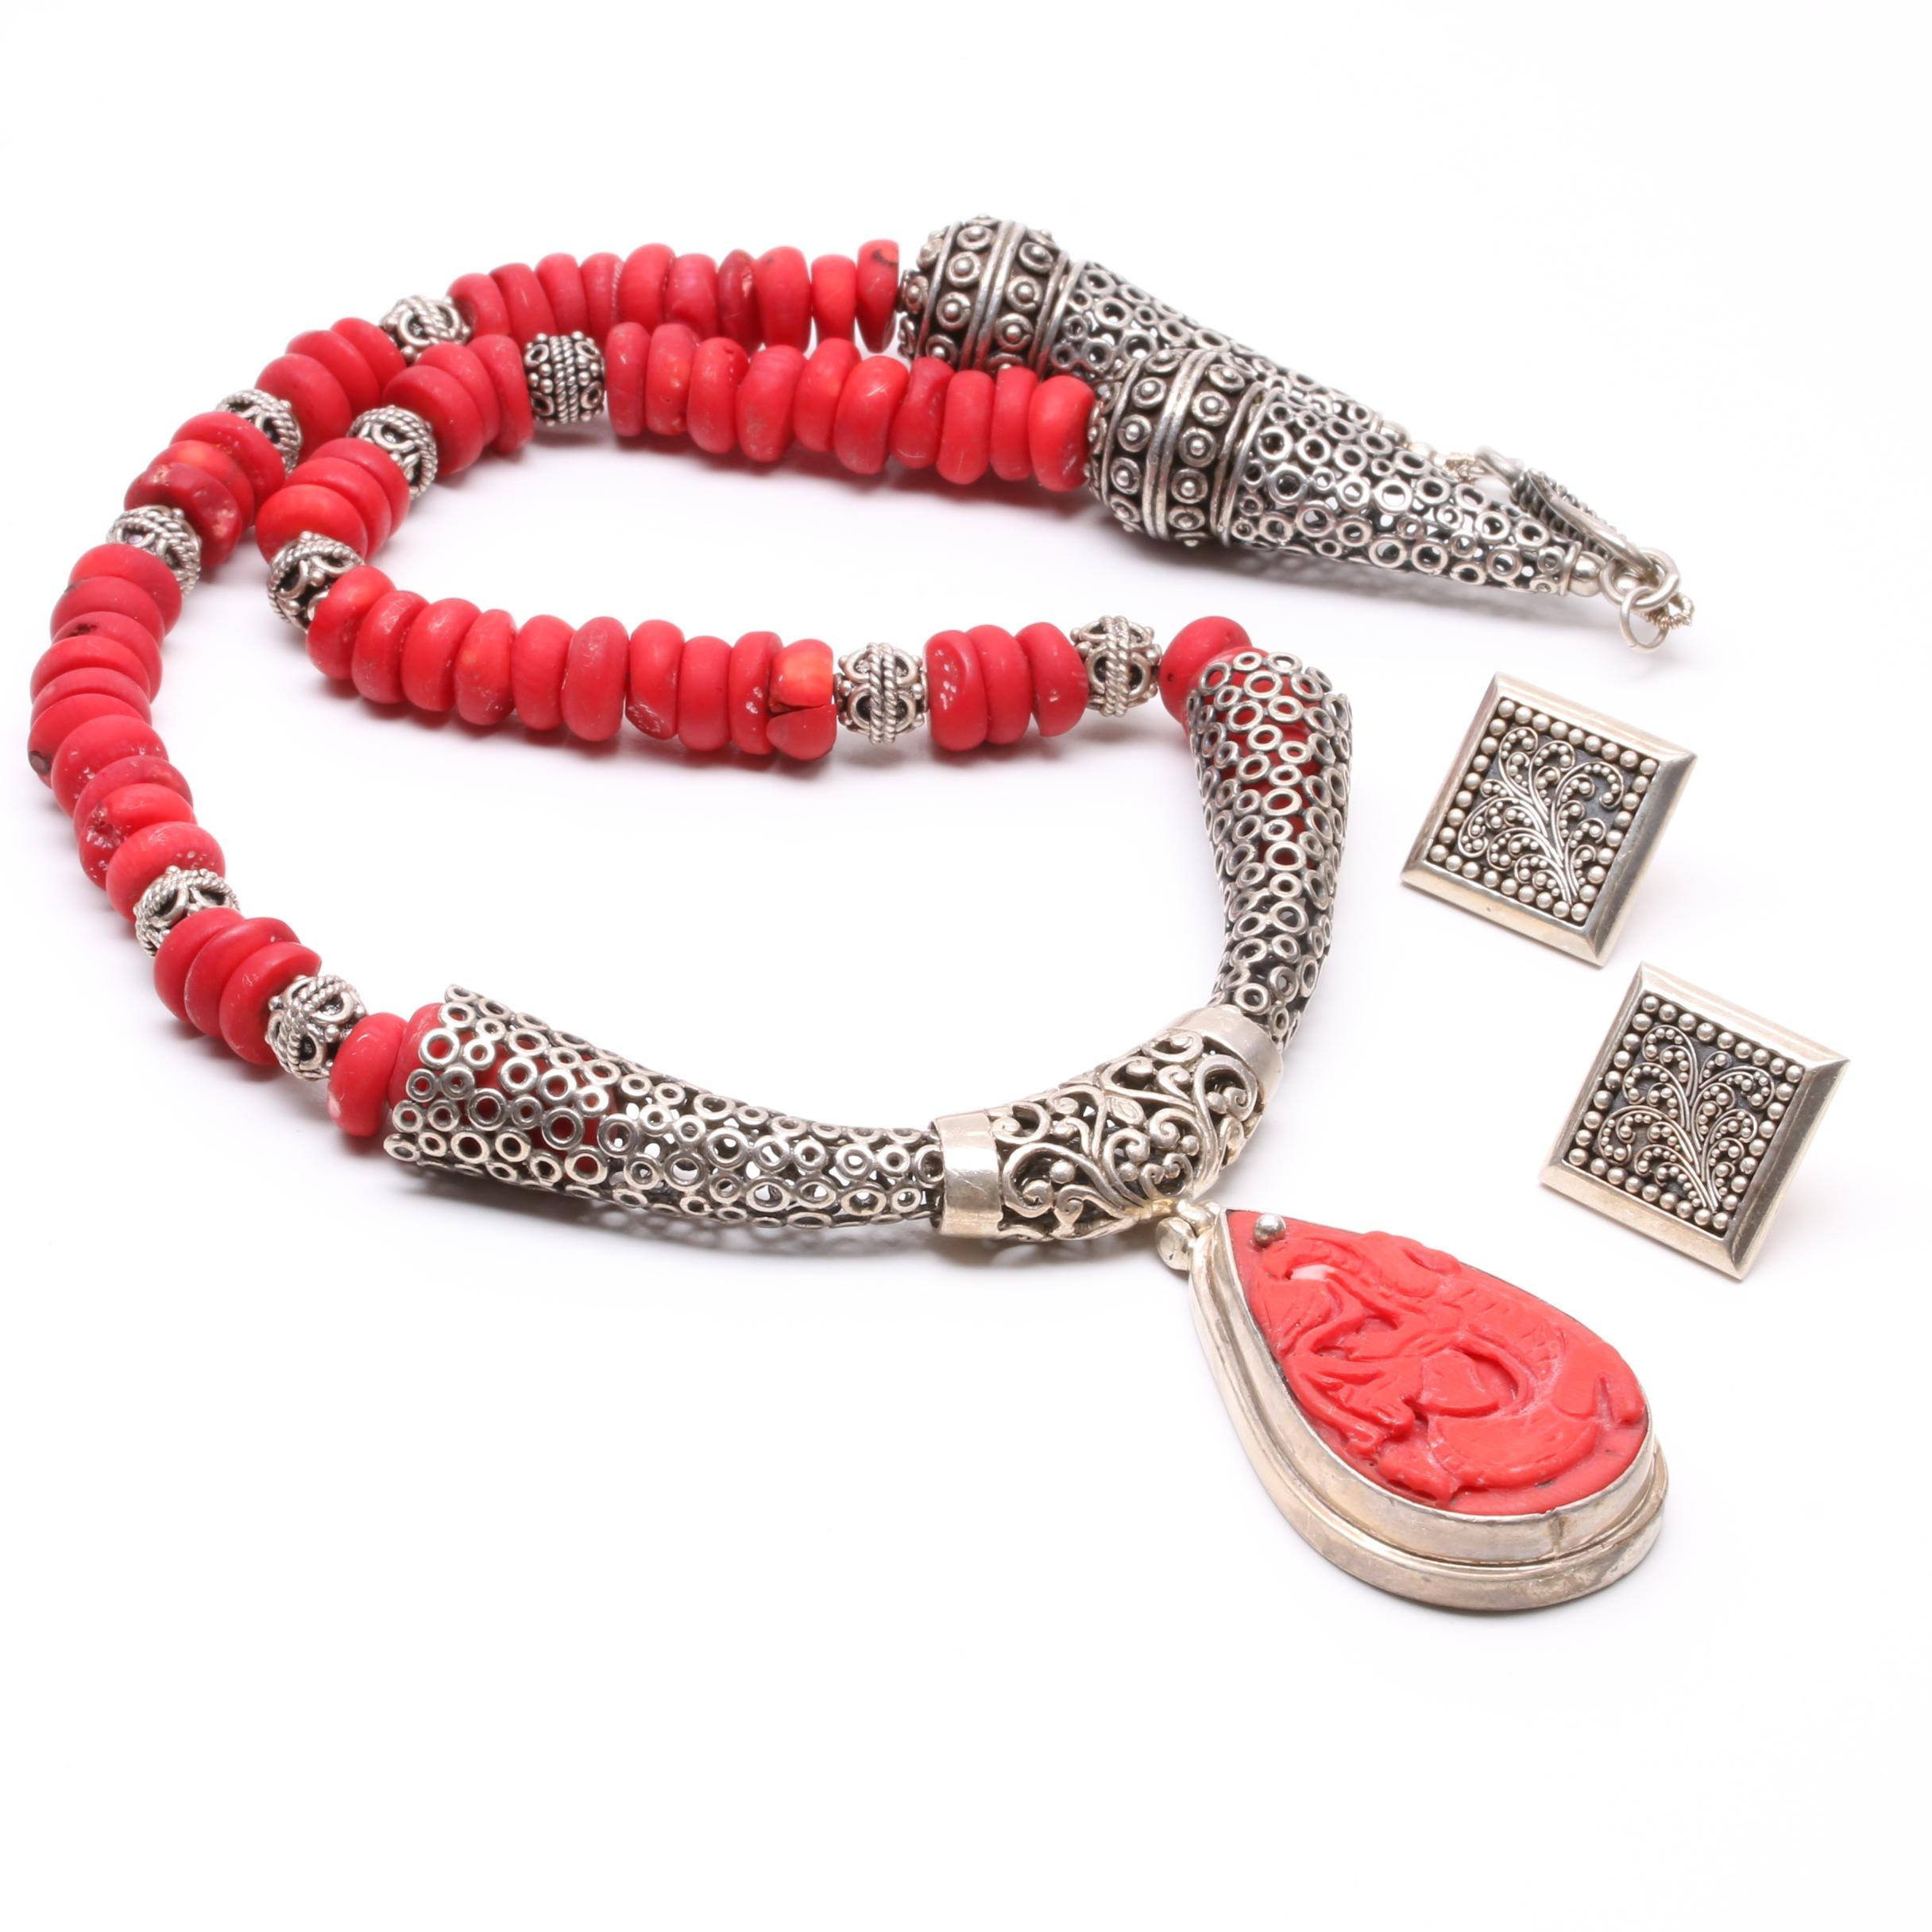 Lois Hill Sterling Silver Beaded Earrings with Coral Statement Necklace